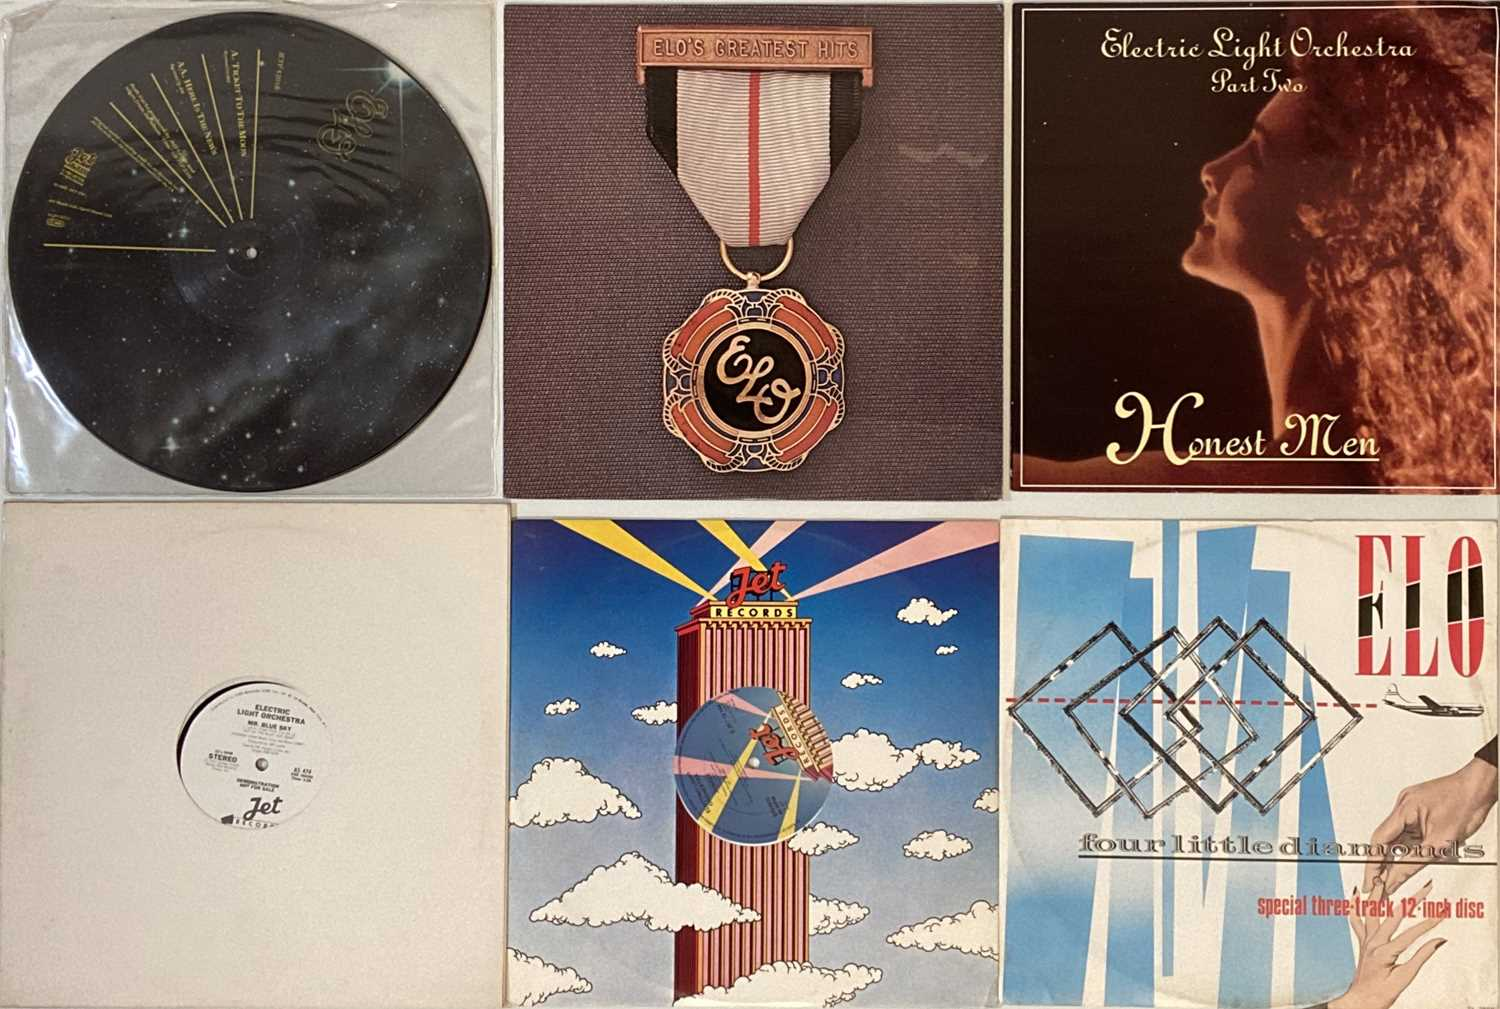 ELO AND RELATED - LPs - Image 5 of 5